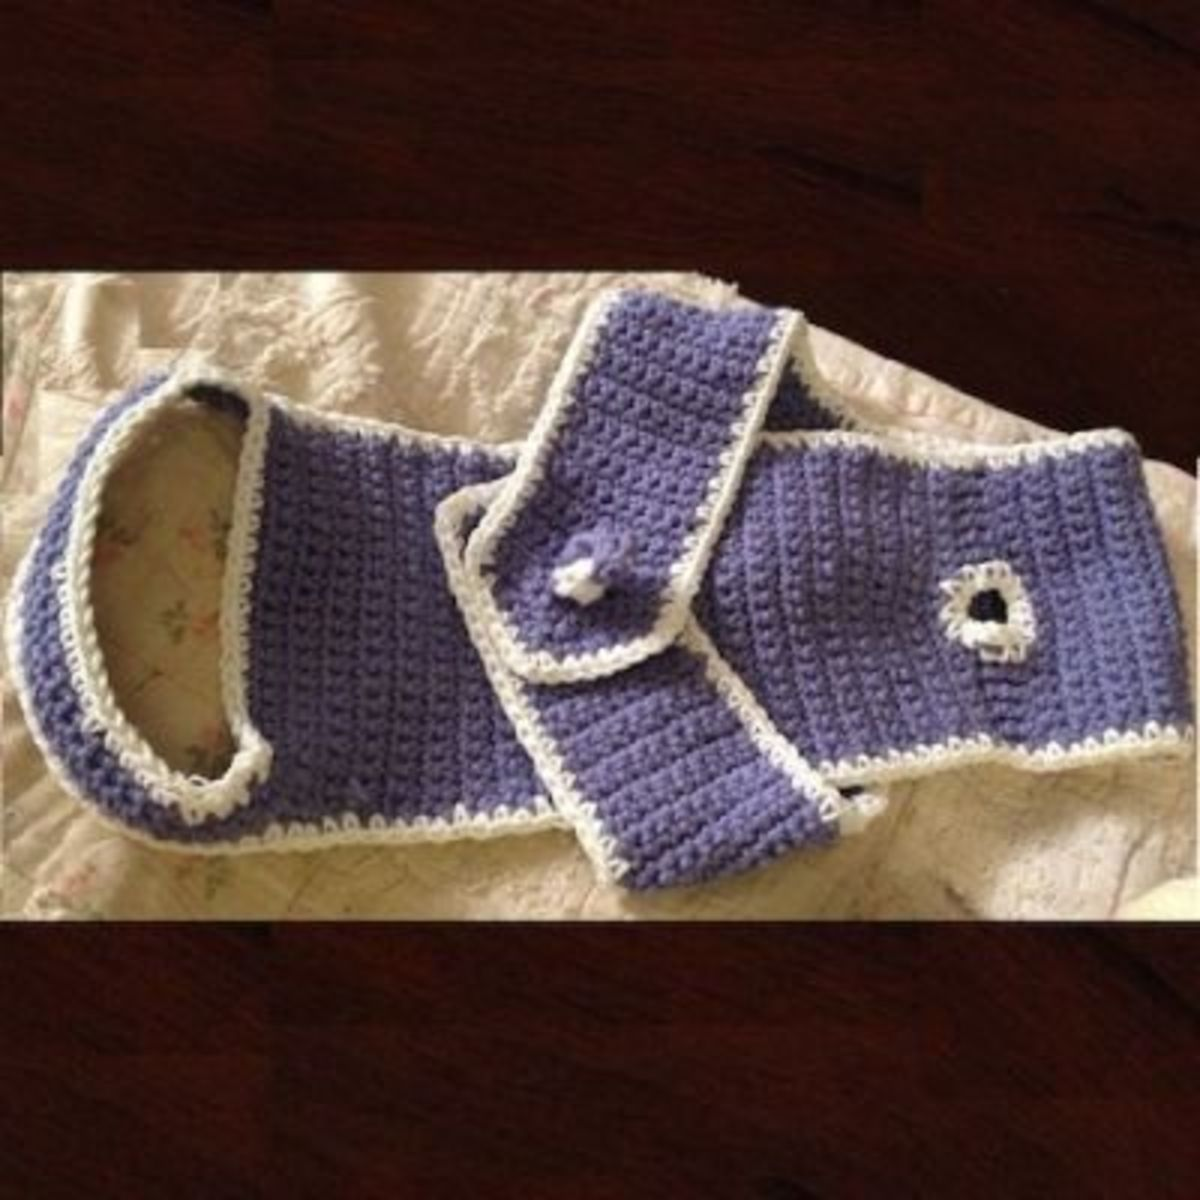 Make Yours To Your Dog's Exact Size With My Easy Custom Fit Instructions!